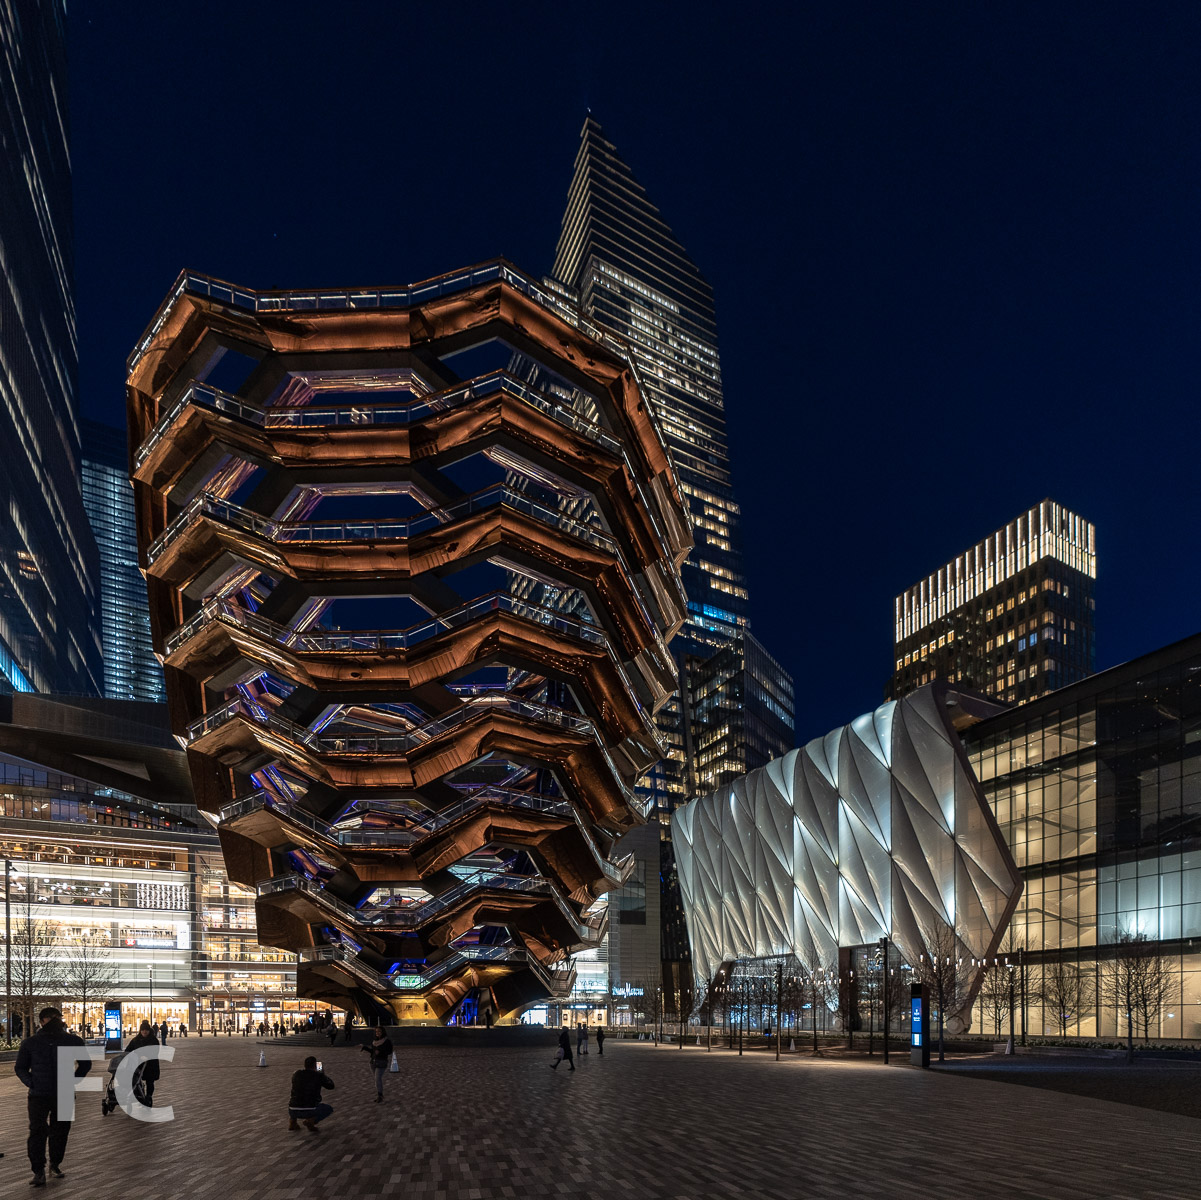 2019_04_01-The Shed at Hudson Yards-DSC09881.jpg